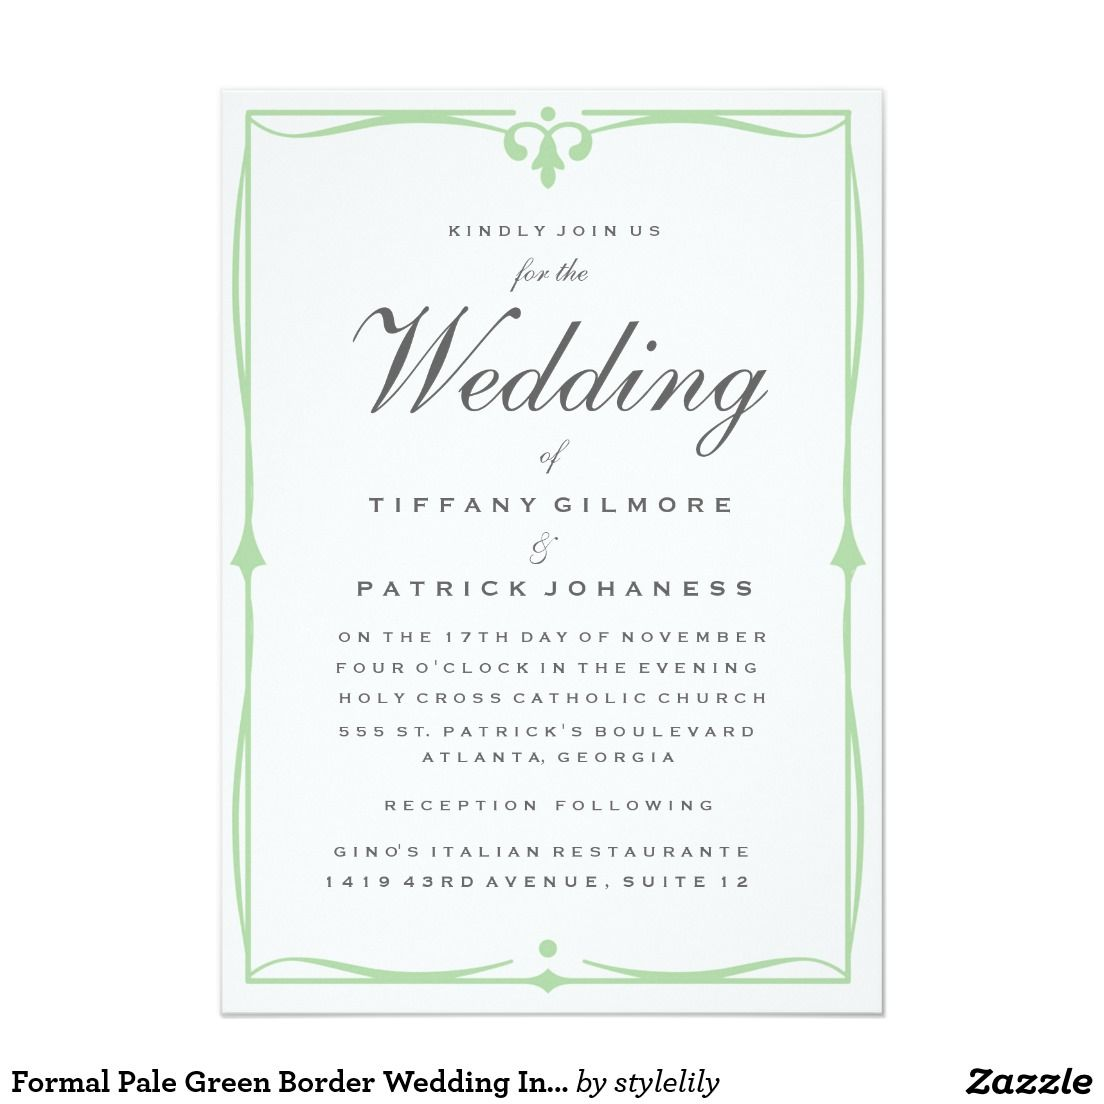 Formal Pale Green Border Wedding Invitation 5\